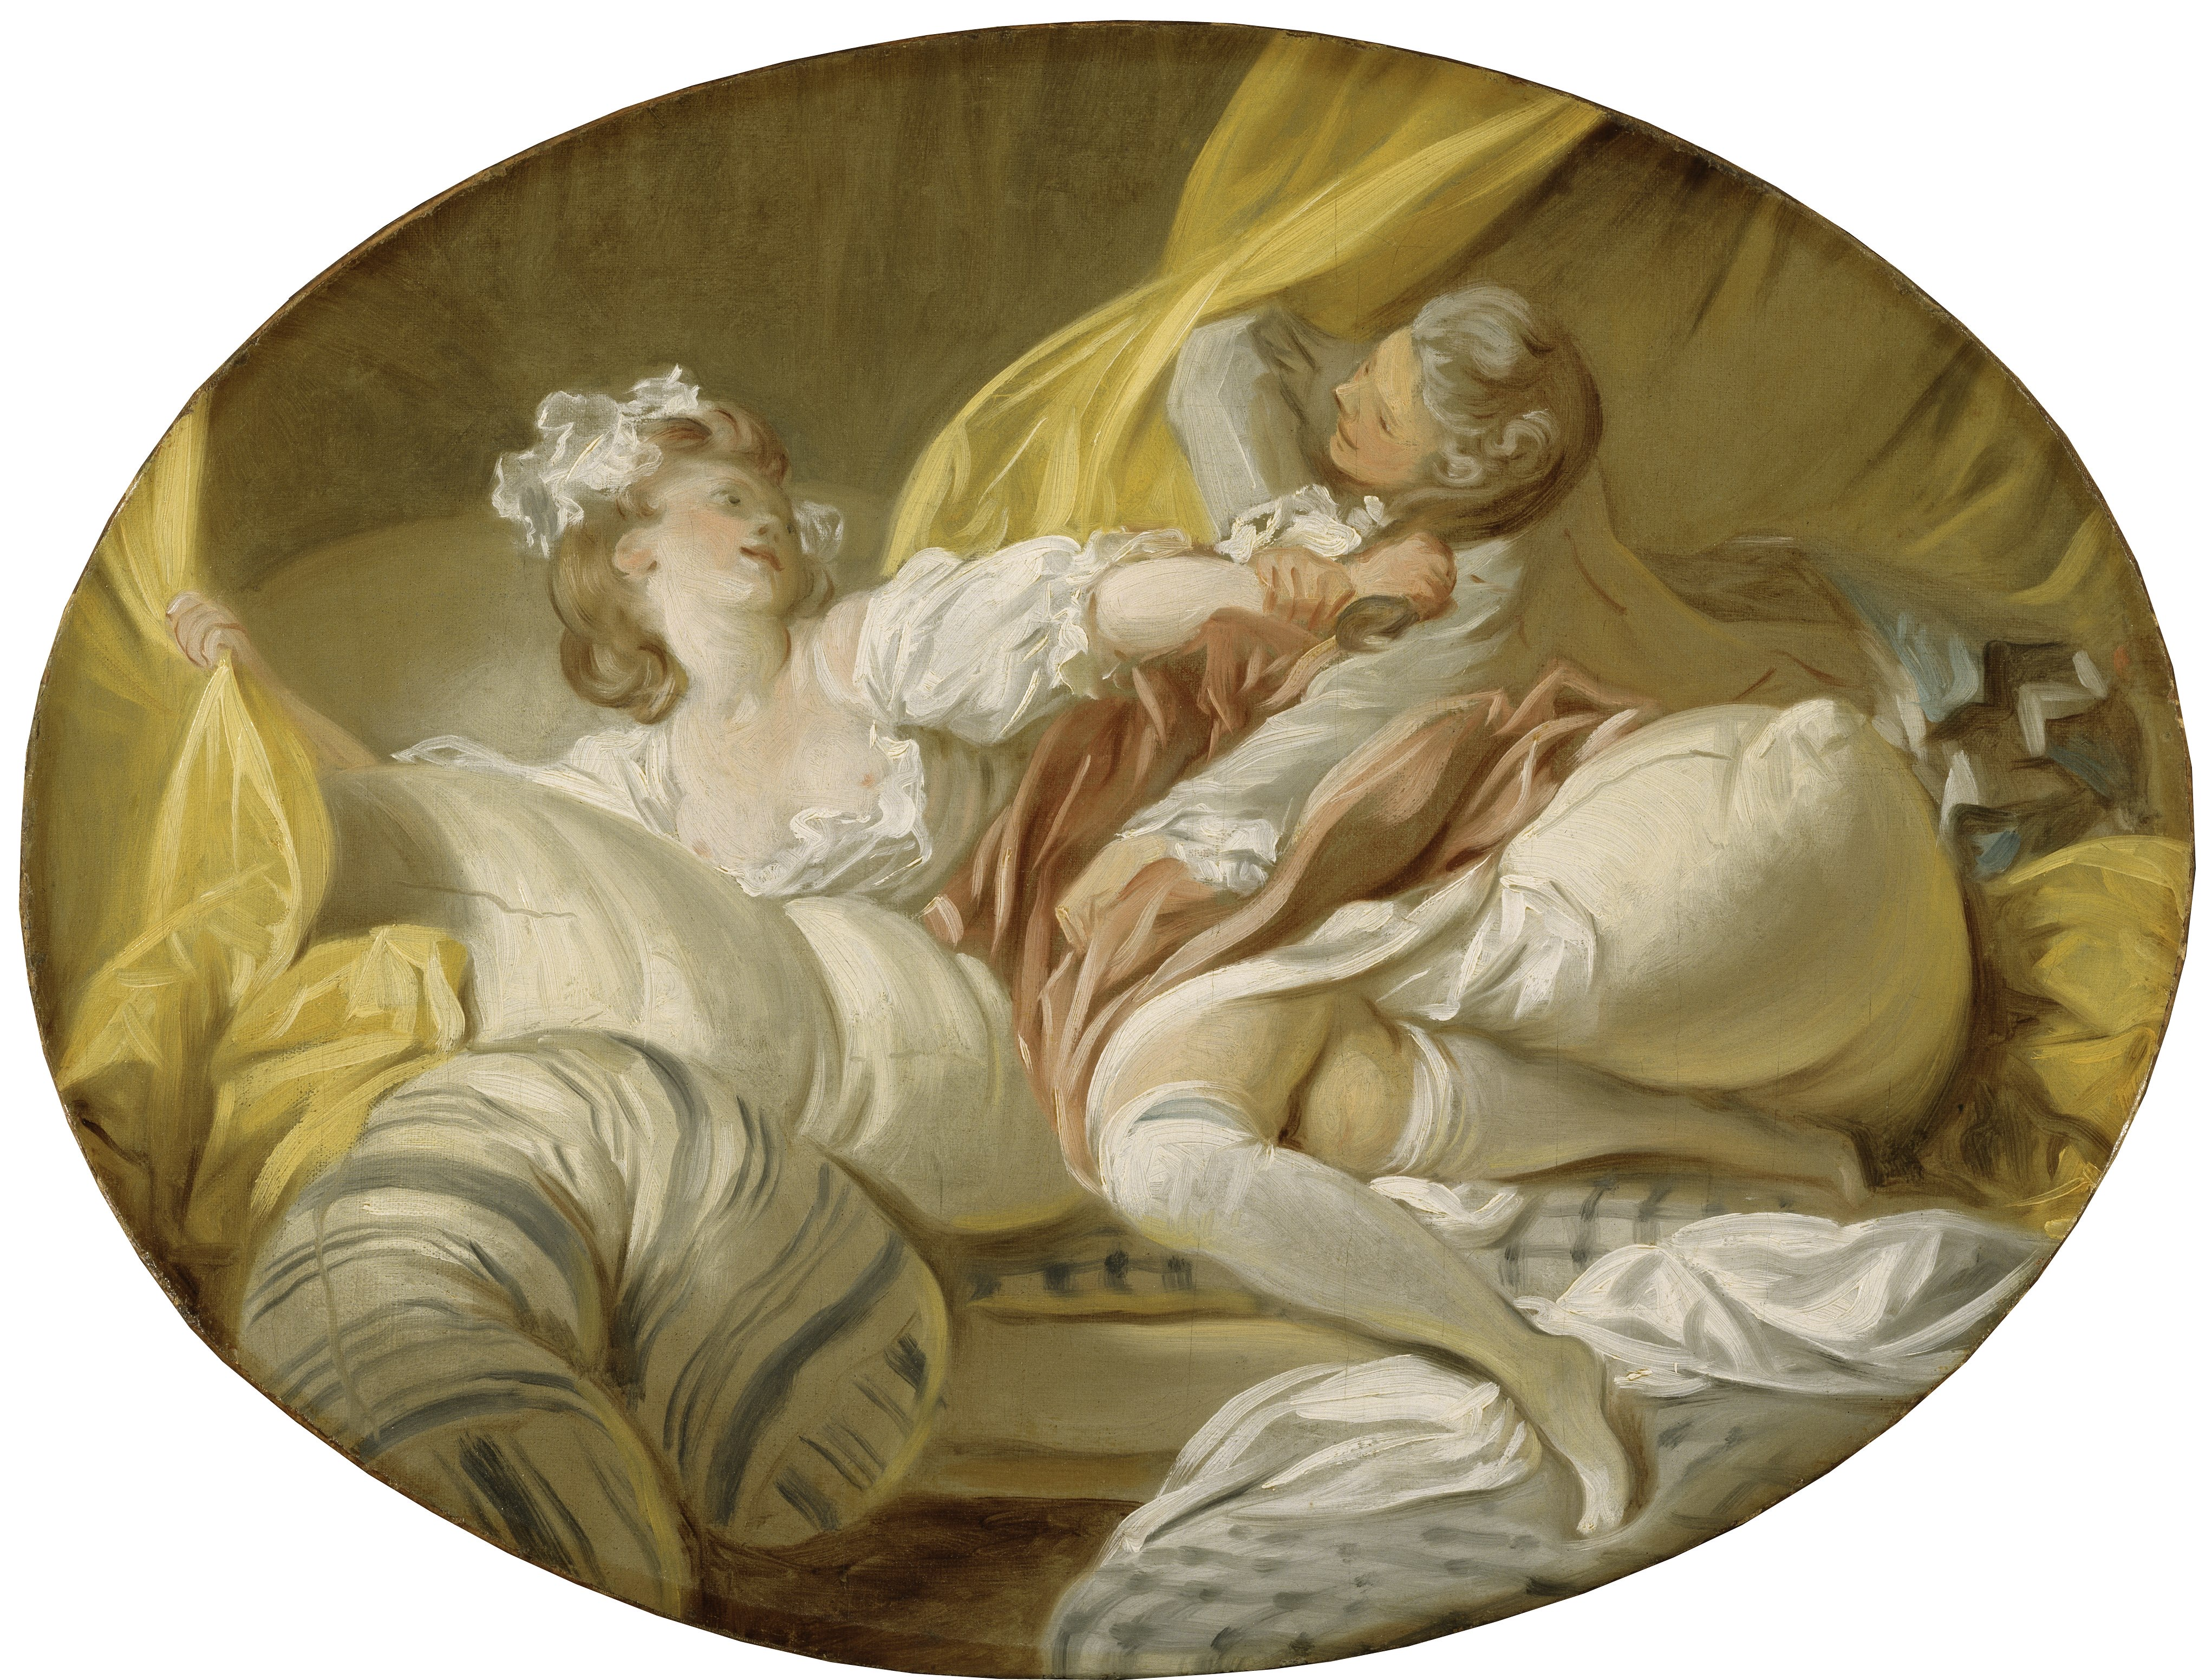 lossy-page1-4085px-The_Beautiful_Servant_(Jean-Honoré_Fragonard)_-_Nationalmuseum_-_22465.tif